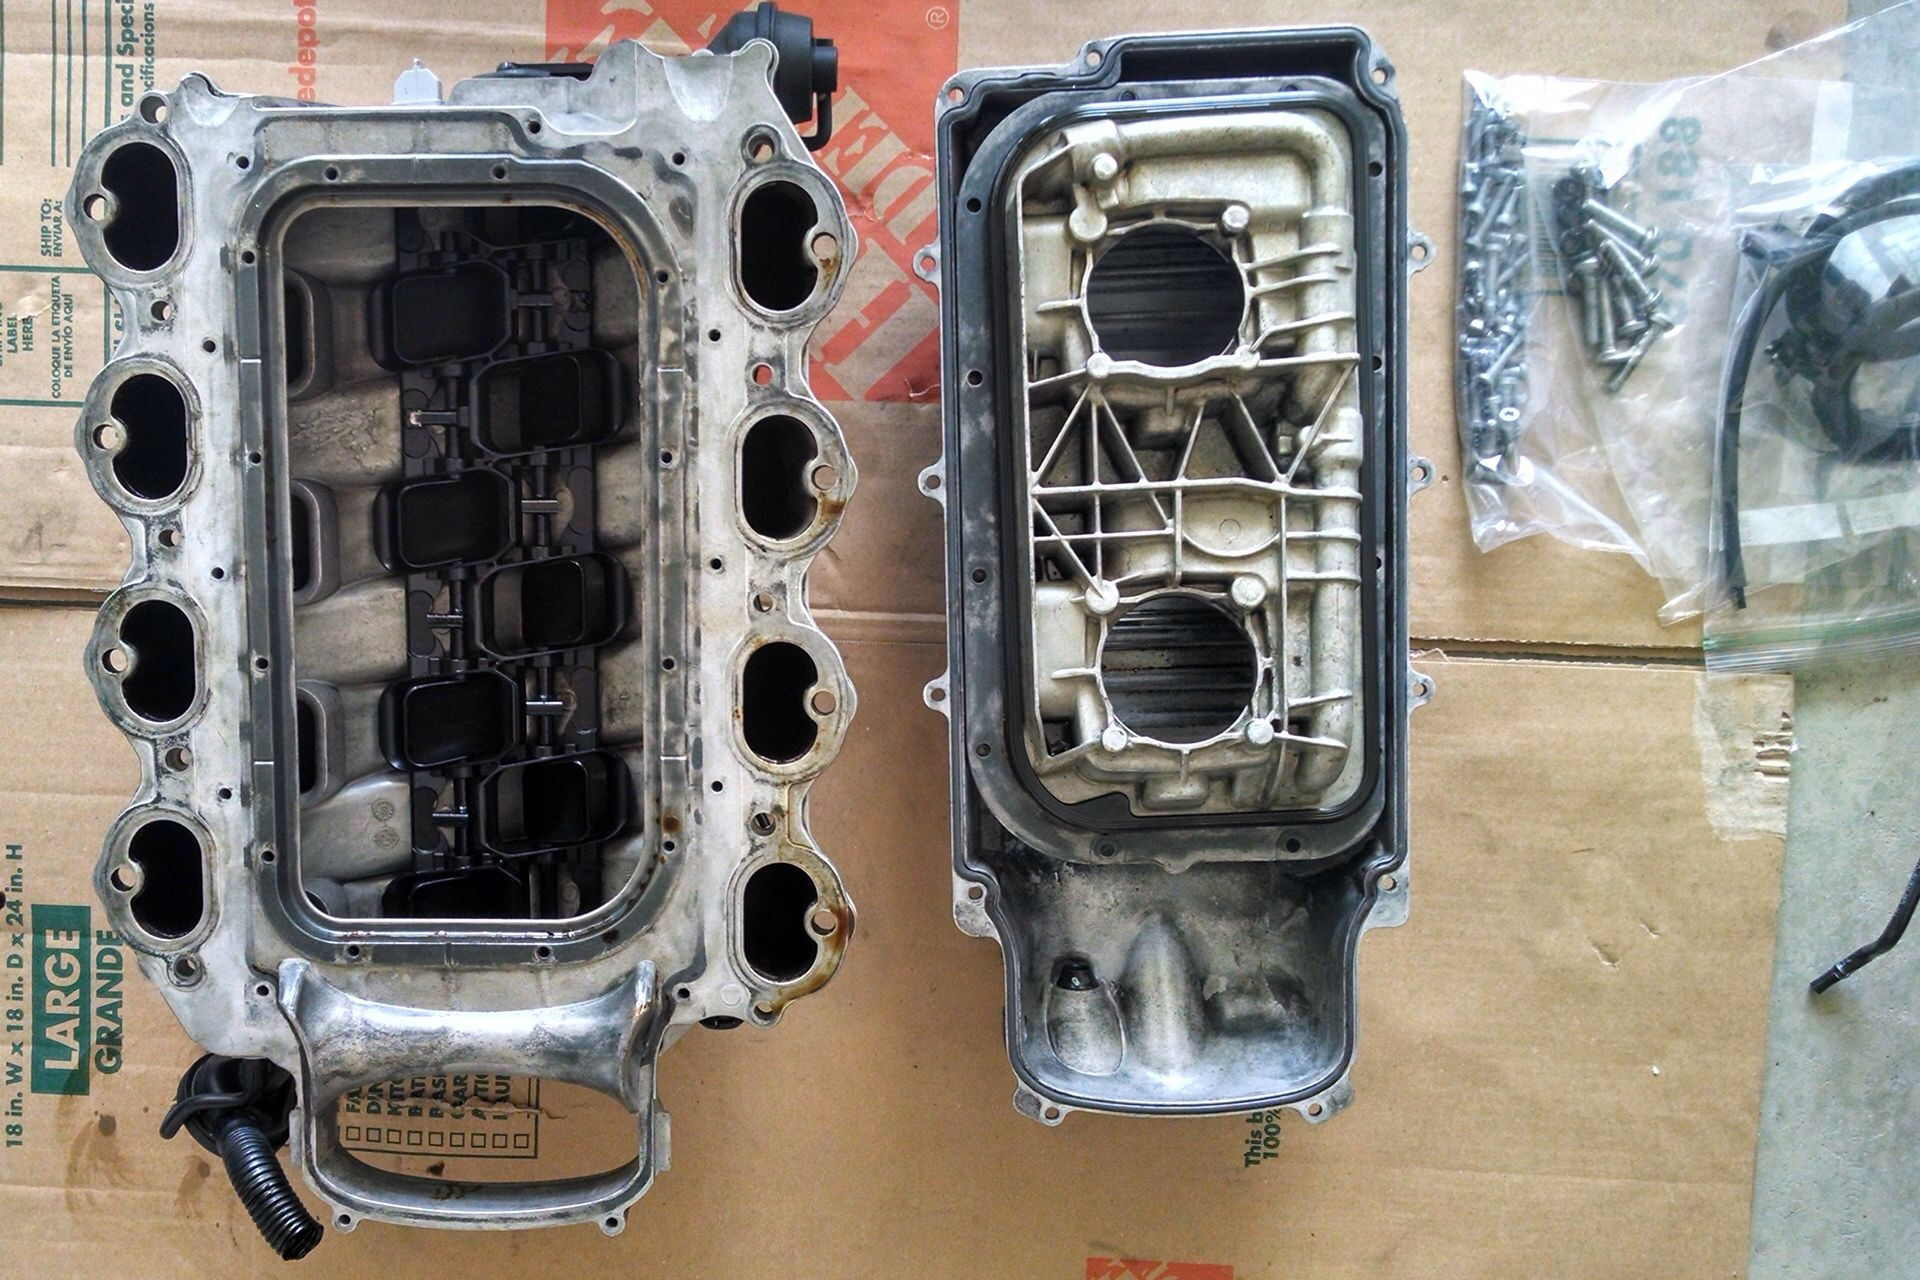 C63 Amg Intake Manifold Options Mbworld Org Forums